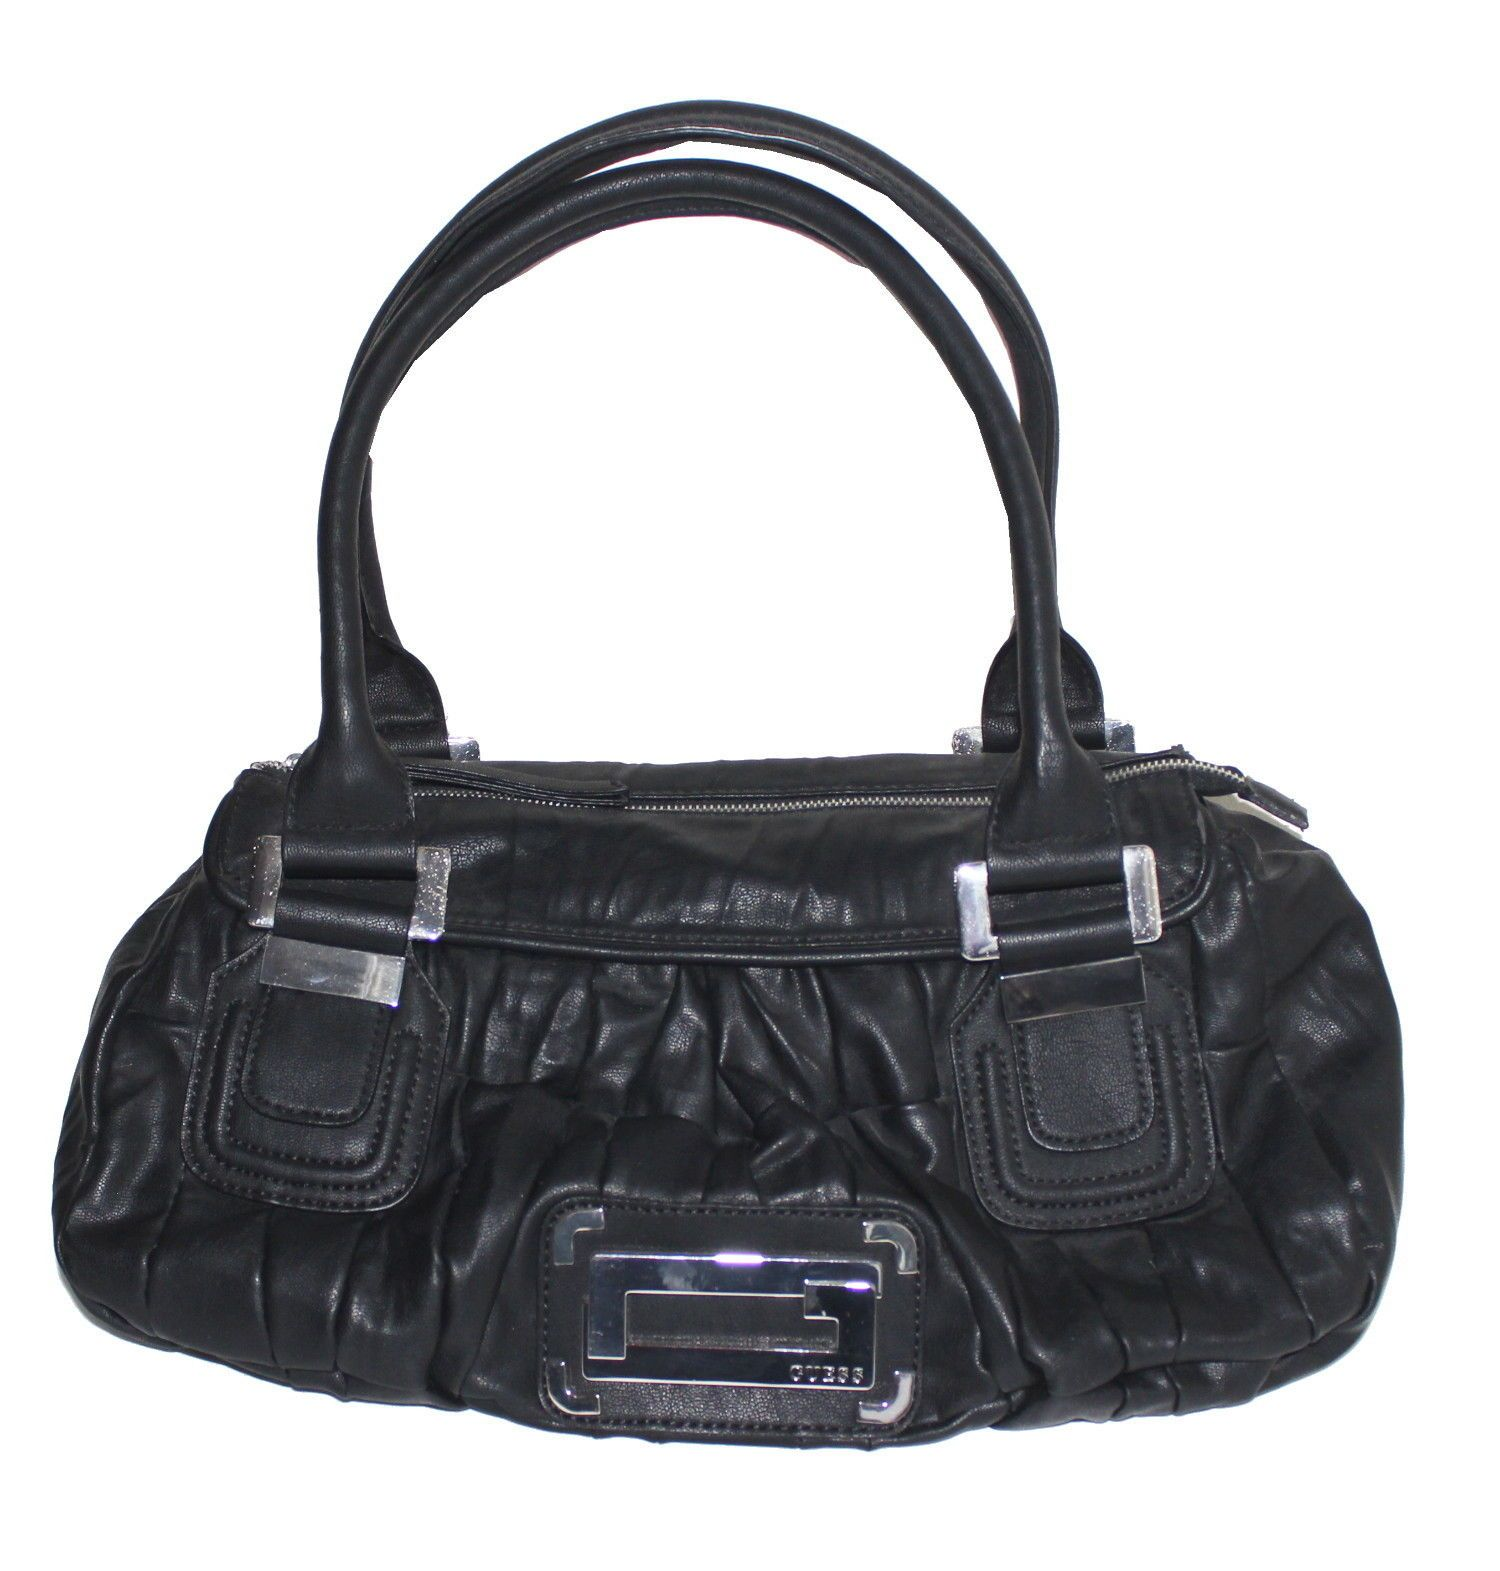 0570264a375 NWT Guess Women s Tulip Satchel Handbag, Black  29.95   Guess ...